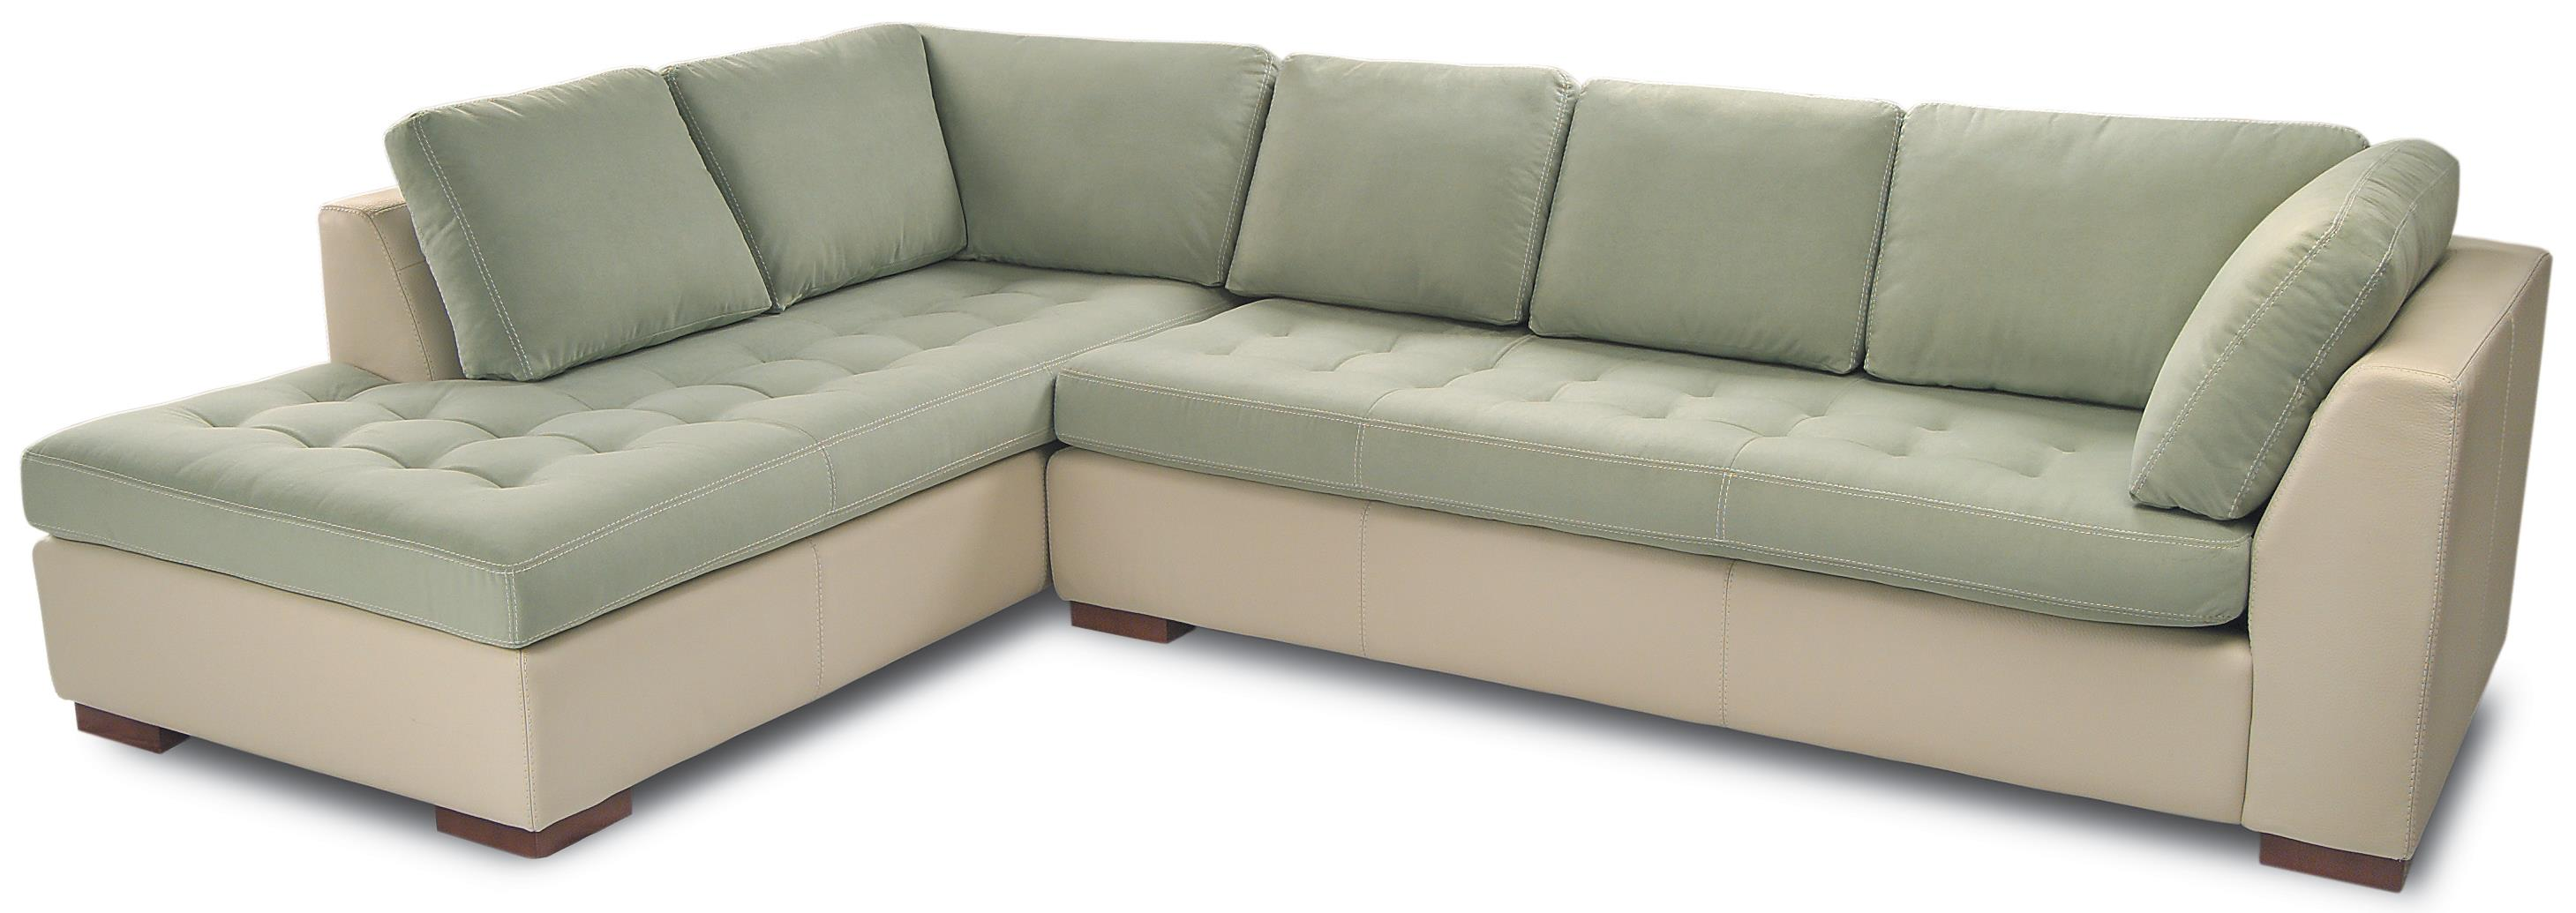 Astoria Sectional Sofa by American Leather at Williams & Kay